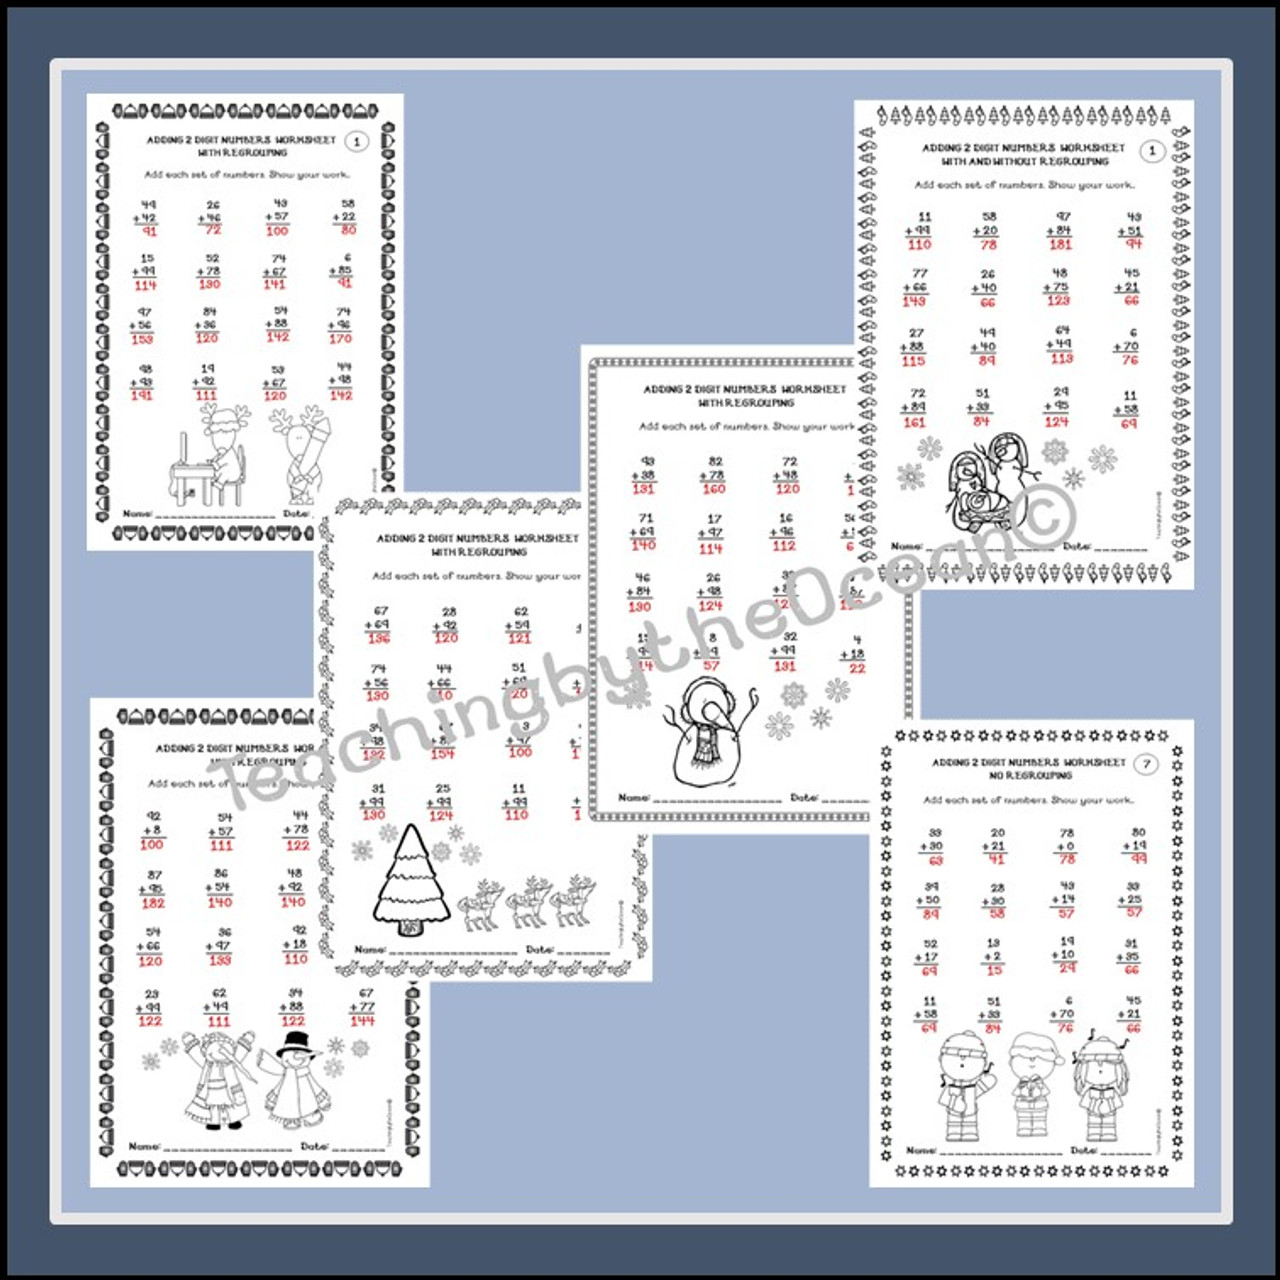 Adding 2 Digit Numbers Worksheets - Winter / Christmas Themed